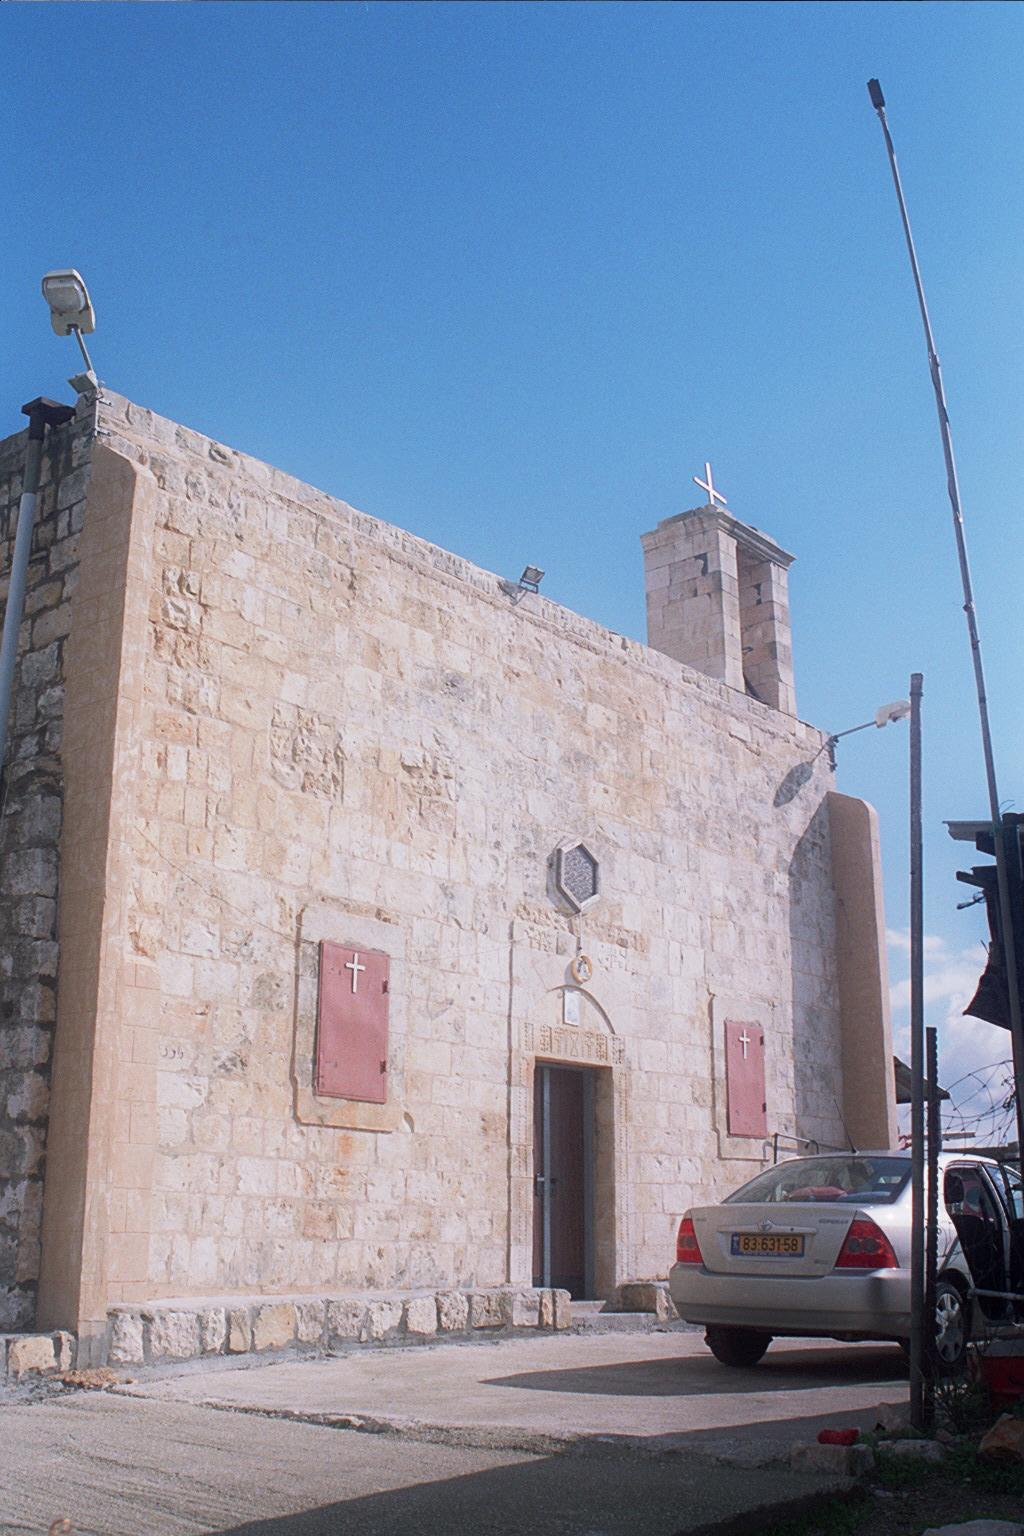 Iqrit - إقرت : The only remain structure in Iqrit, its church